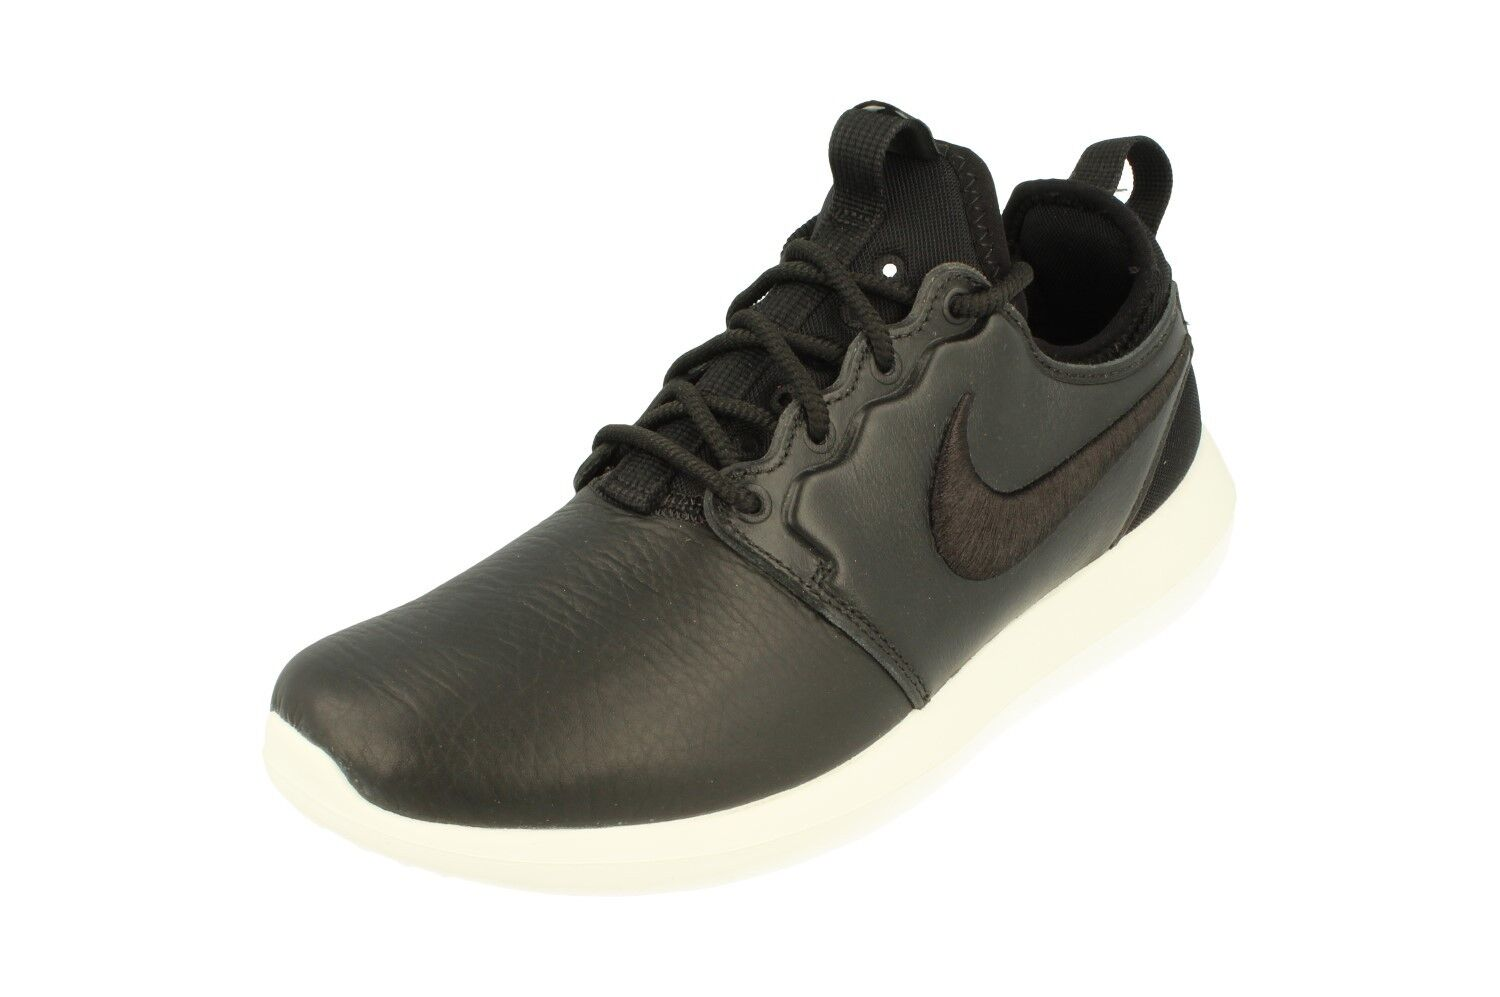 Nike Womens Roshe Two SI Running Trainers Trainers Trainers 881187 Sneakers shoes 001 546539